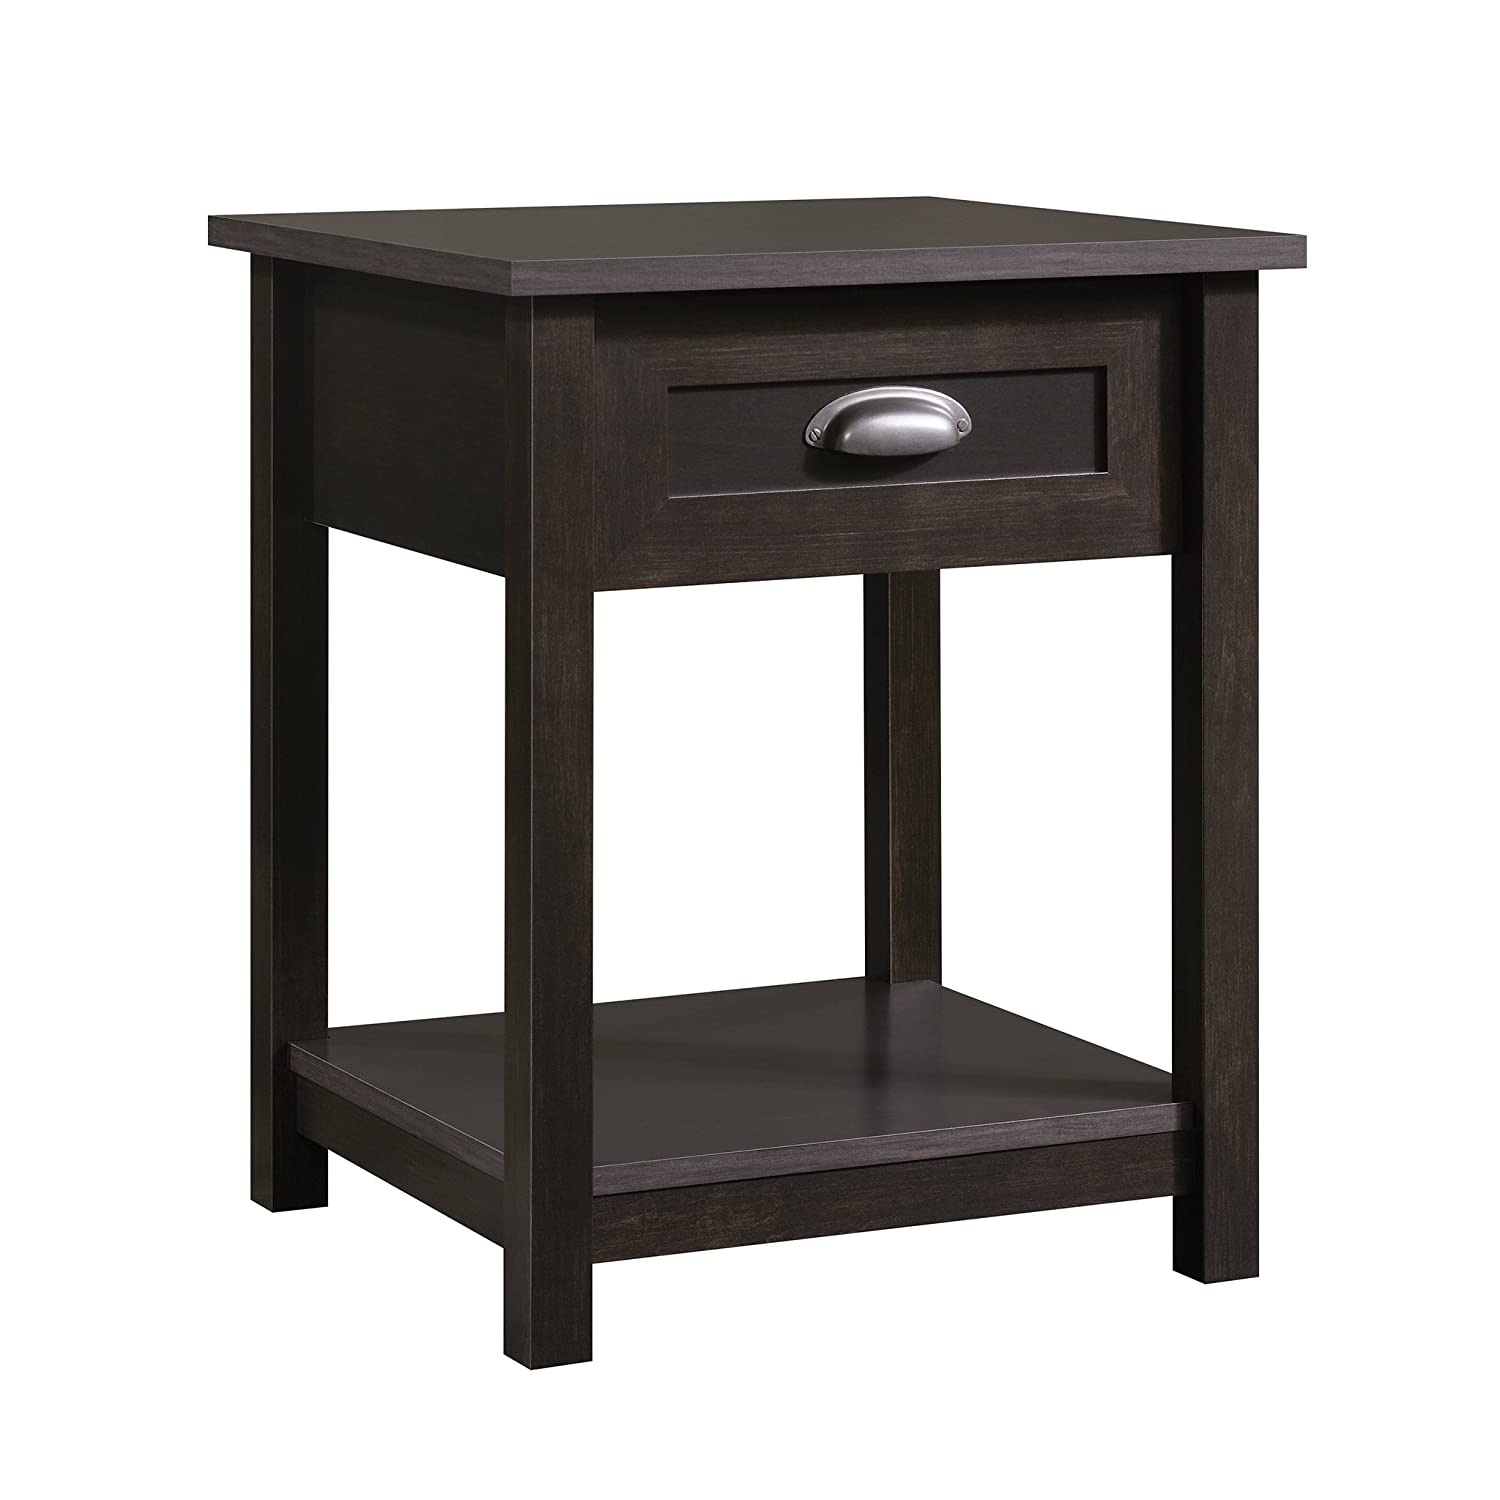 Sauder County Line Night Stand with Estate Black Finish Sauder Woodworking 416744